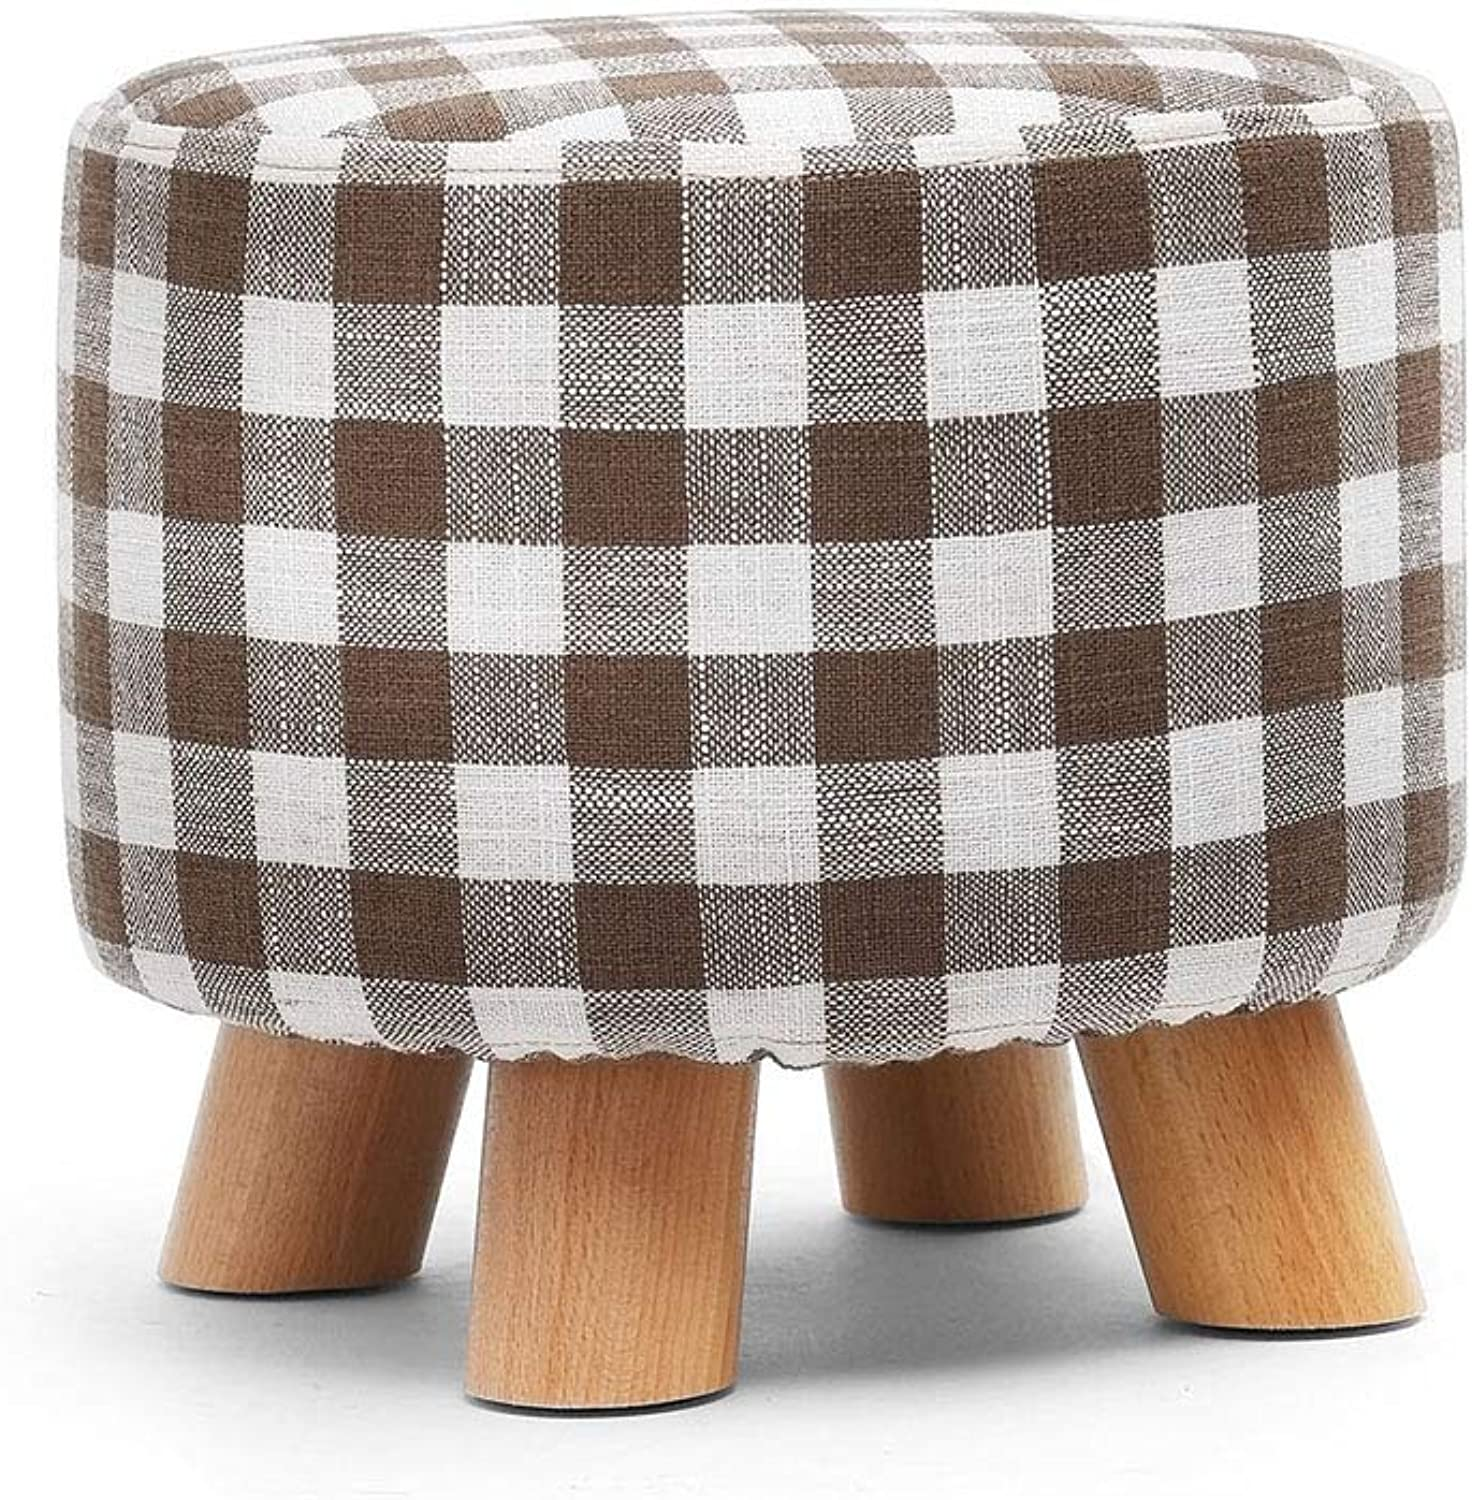 Solid Wood stool - Household Coffee Table Sofa stool, Solid Wood Frame, stool Cover can be Cleaned